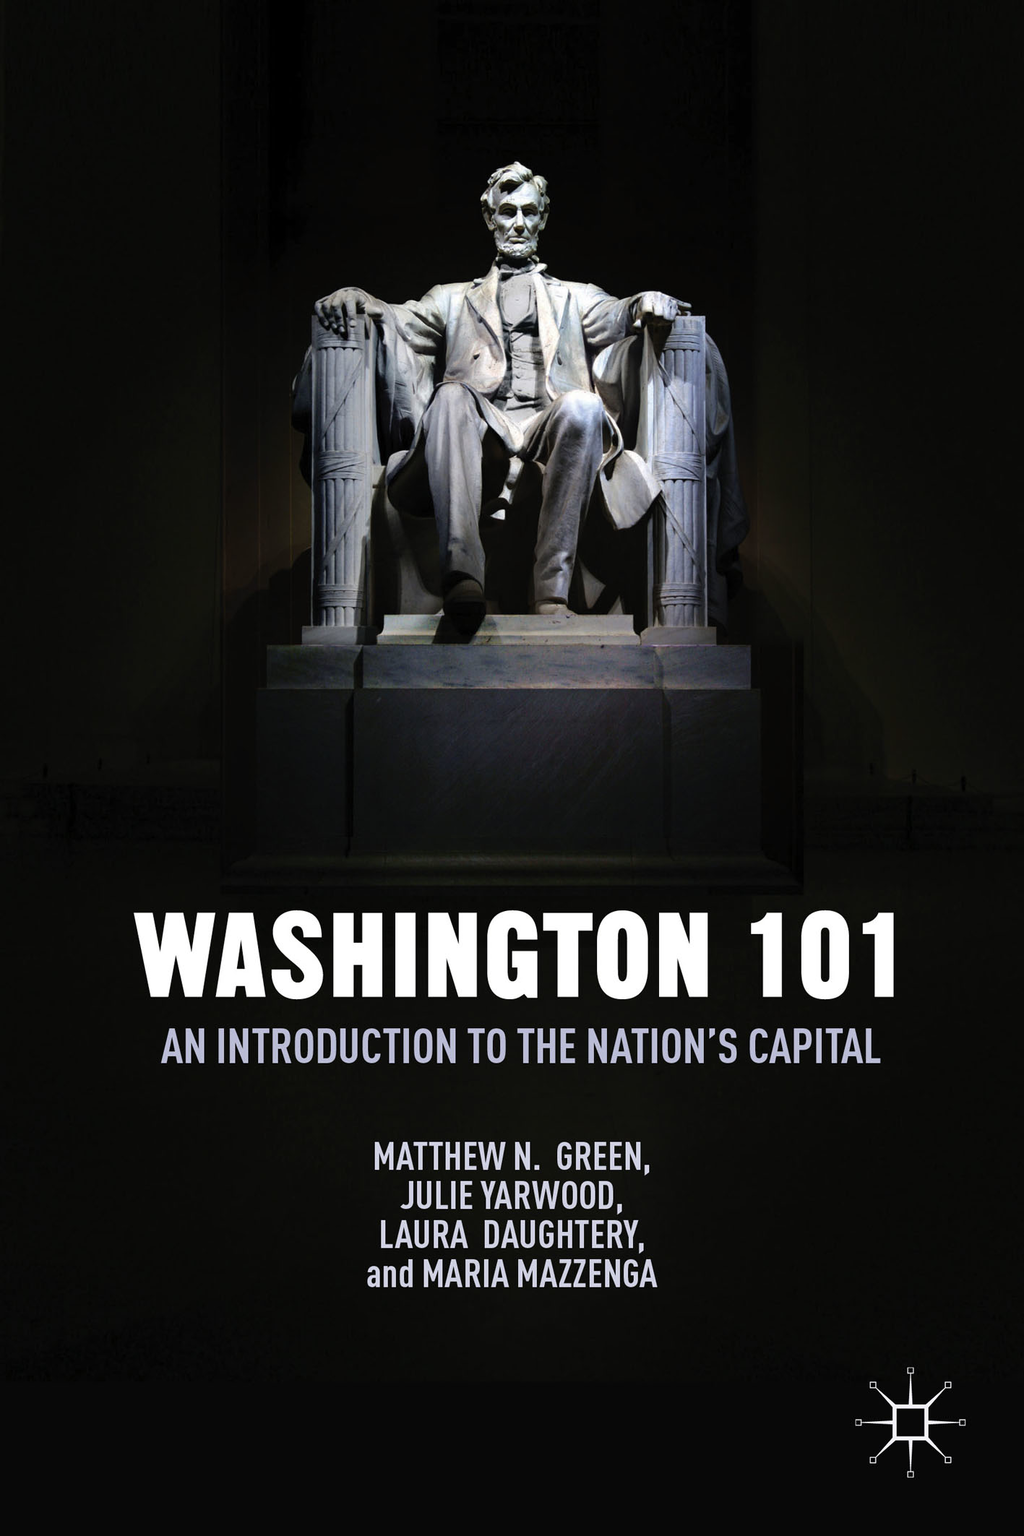 Washington 101 An Introduction to the Nation's Capital